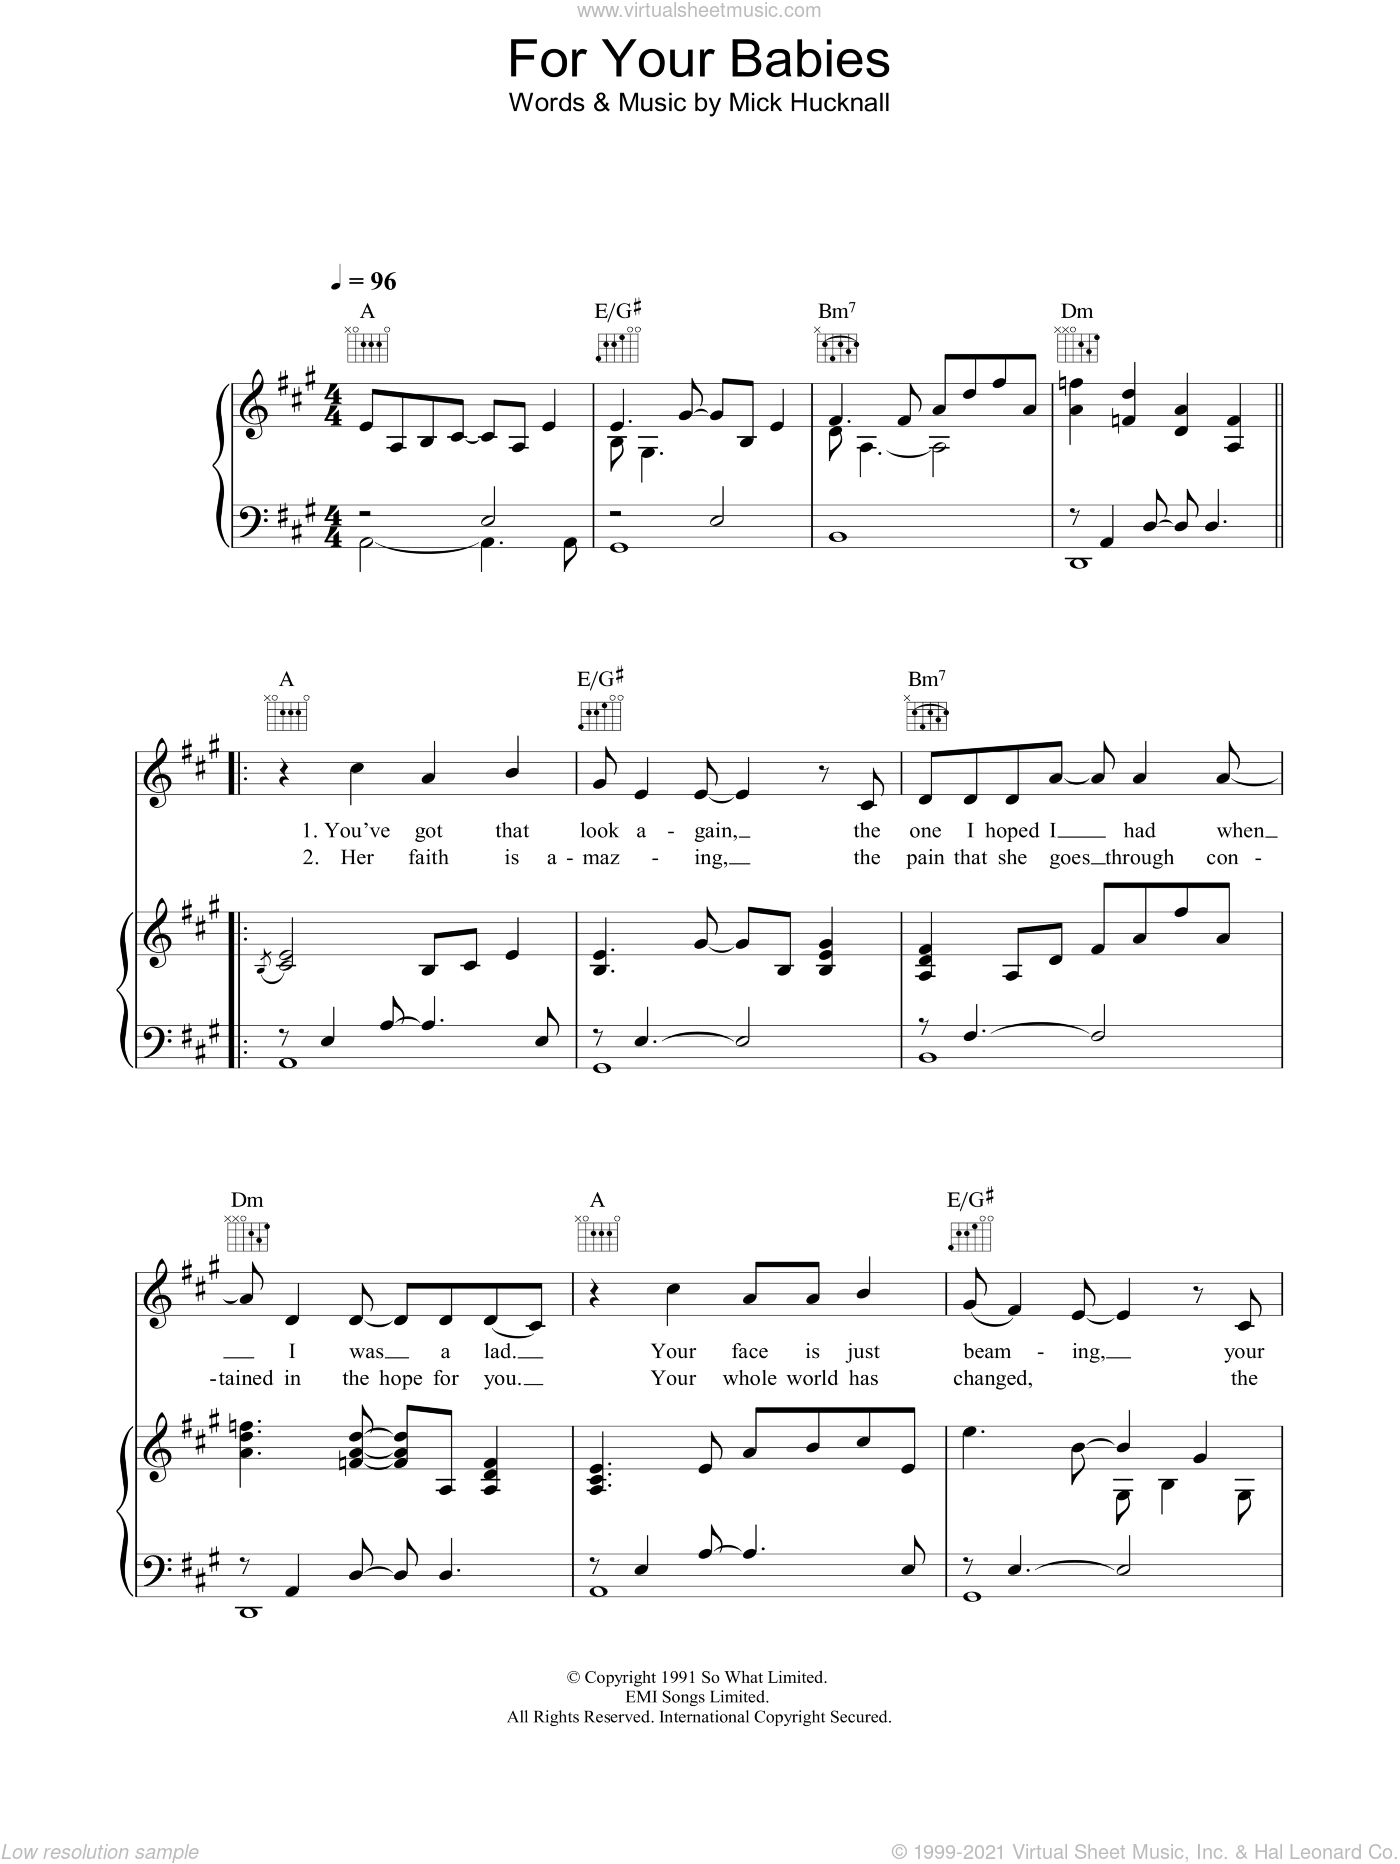 For Your Babies sheet music for voice, piano or guitar by Mick Hucknall